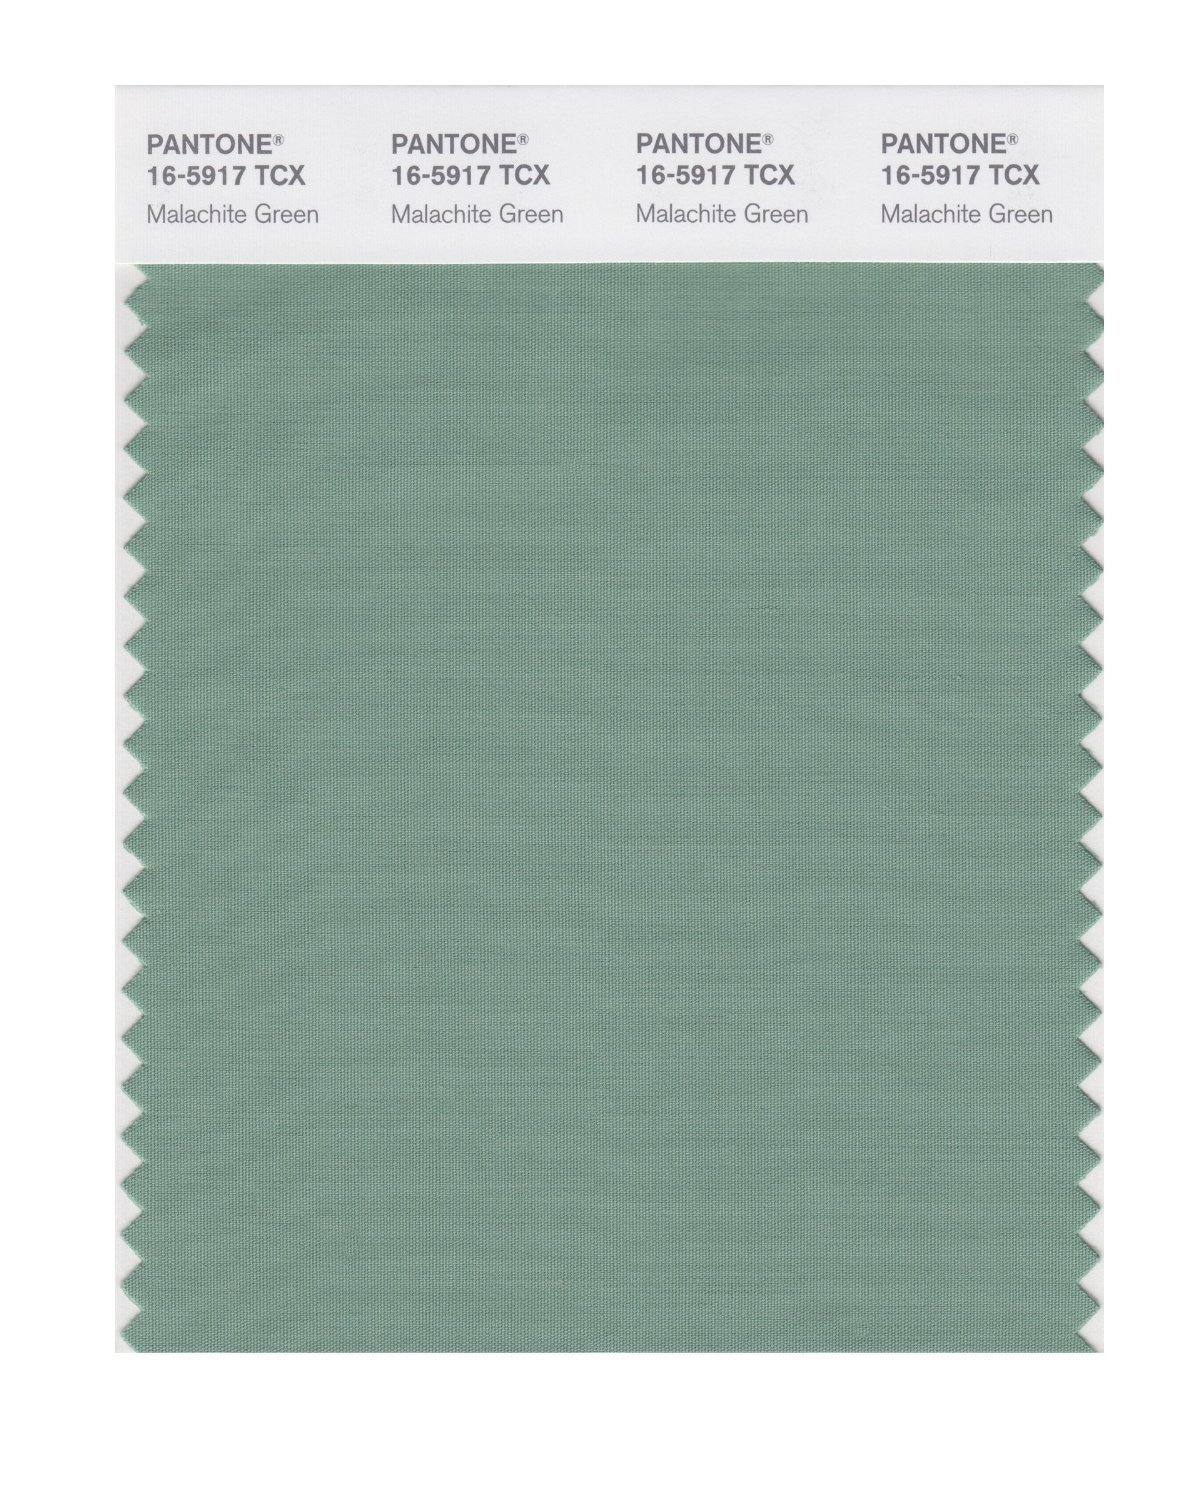 Pantone Smart Swatch 16-5917 Malachite Green